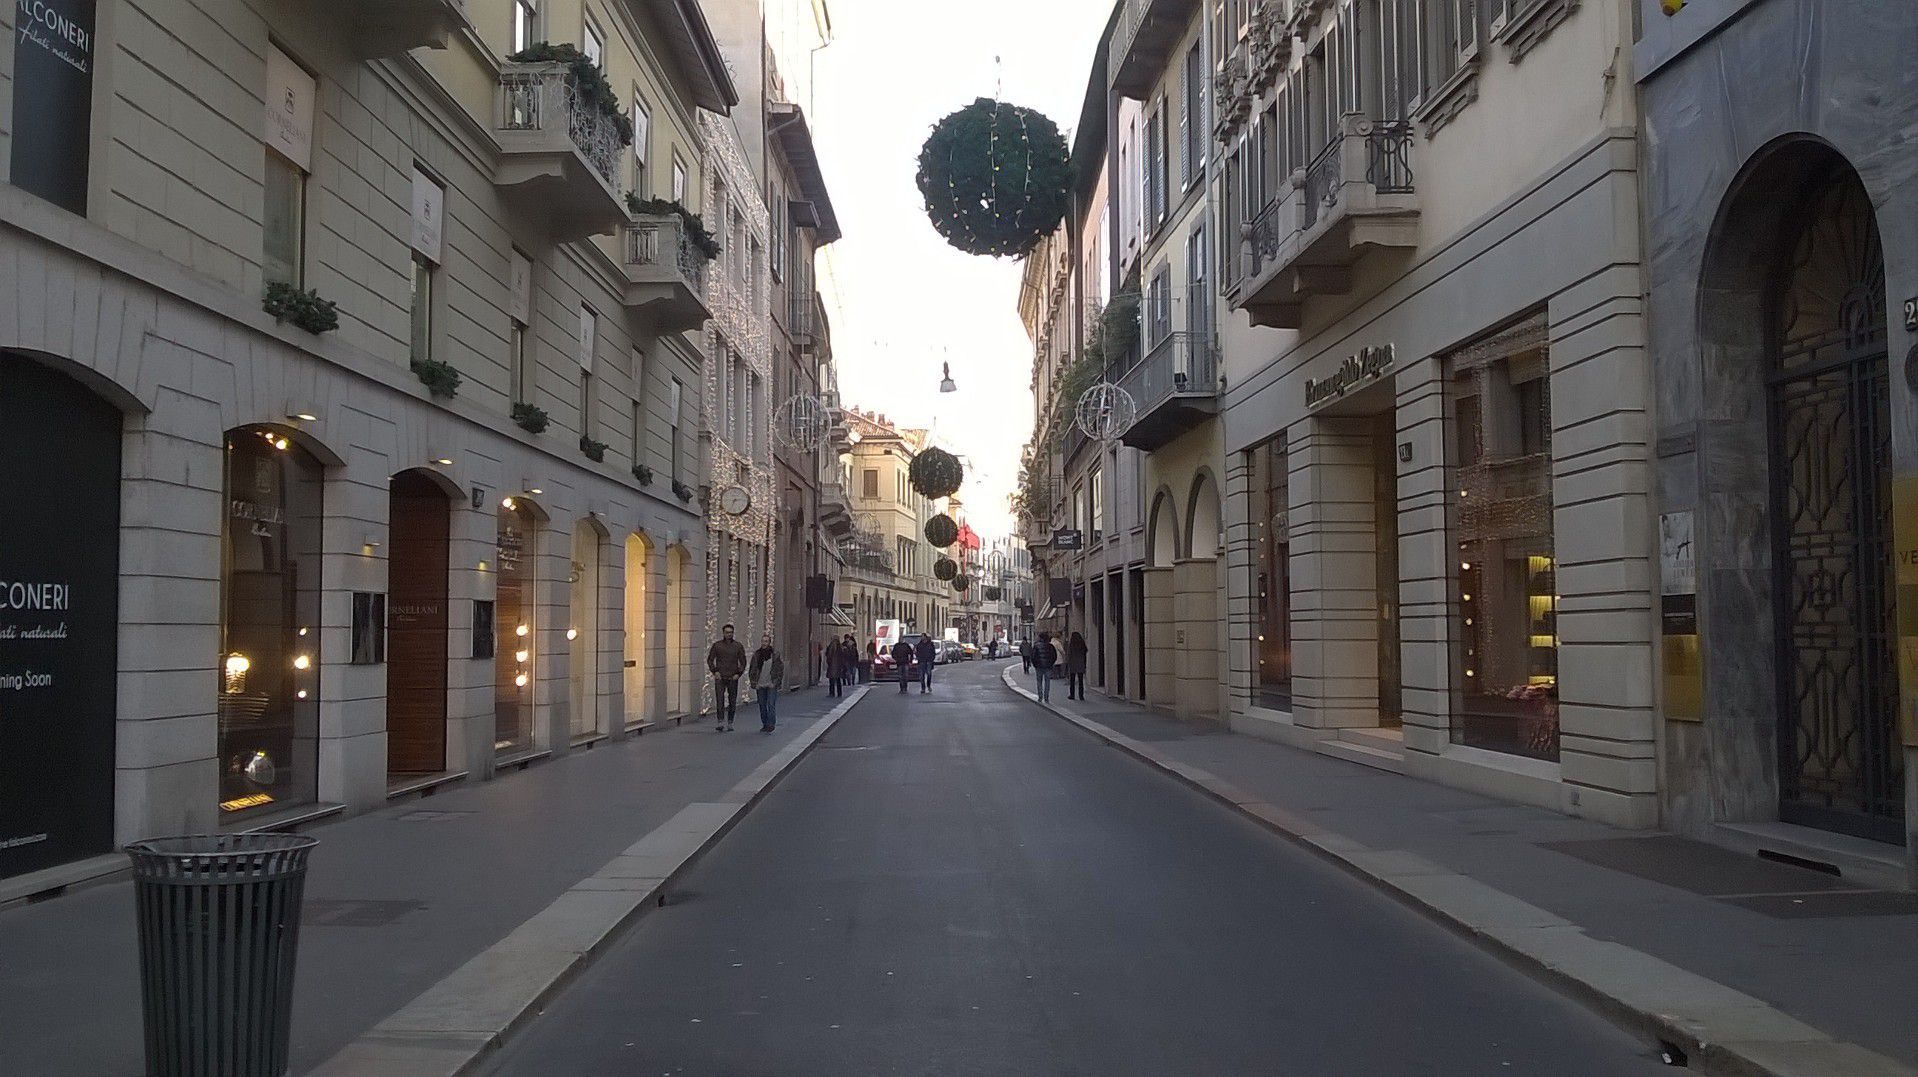 The street traces the Roman city